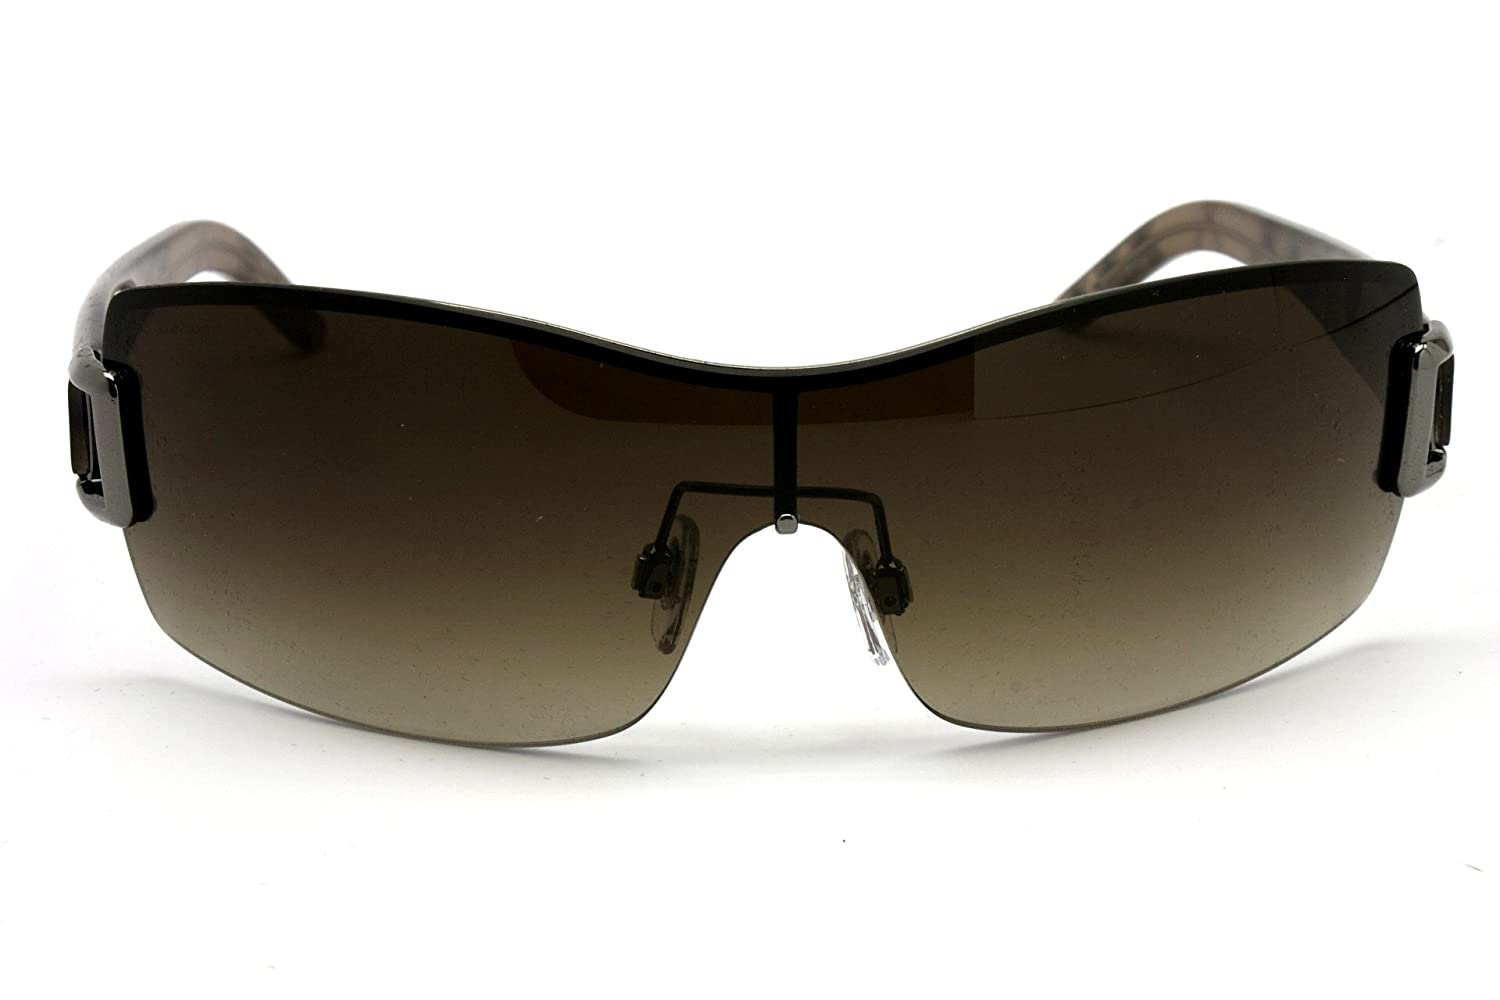 Image result for These cute Burberry sunnies birthday gift images